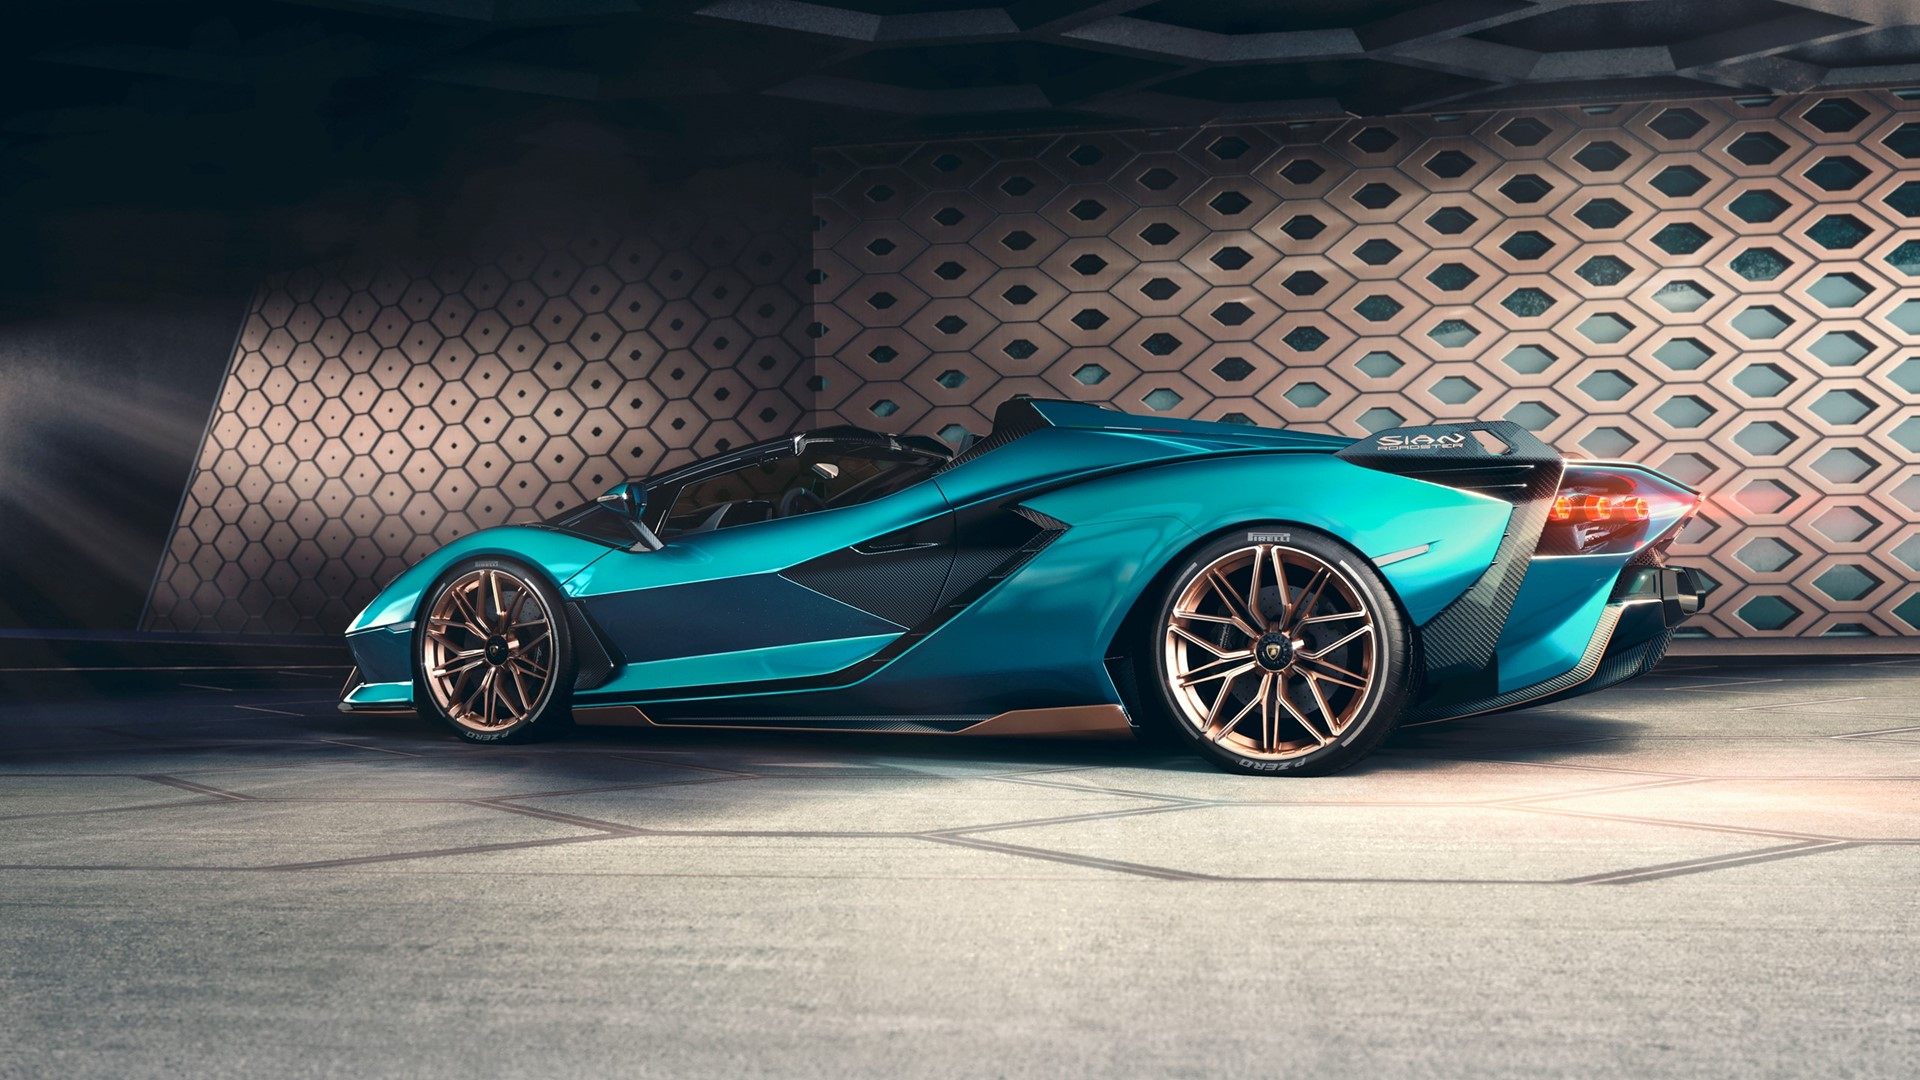 The Lamborghini Sián Roadster: Experience future technology under open skies - Image 3